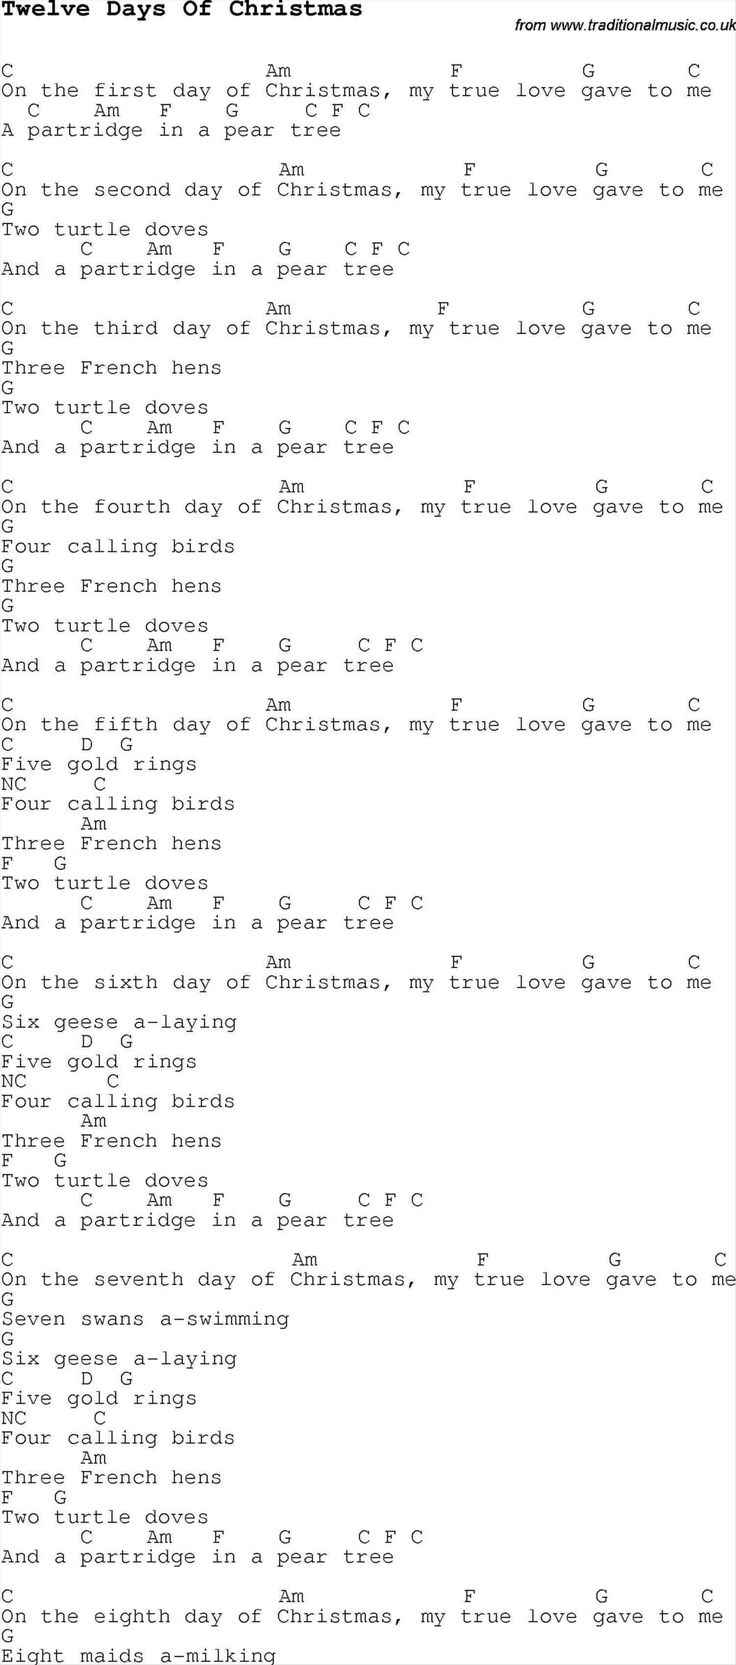 Best 25 christian songs list ideas on pinterest black hole sun new post 12 days of christmas song list hexwebz Gallery